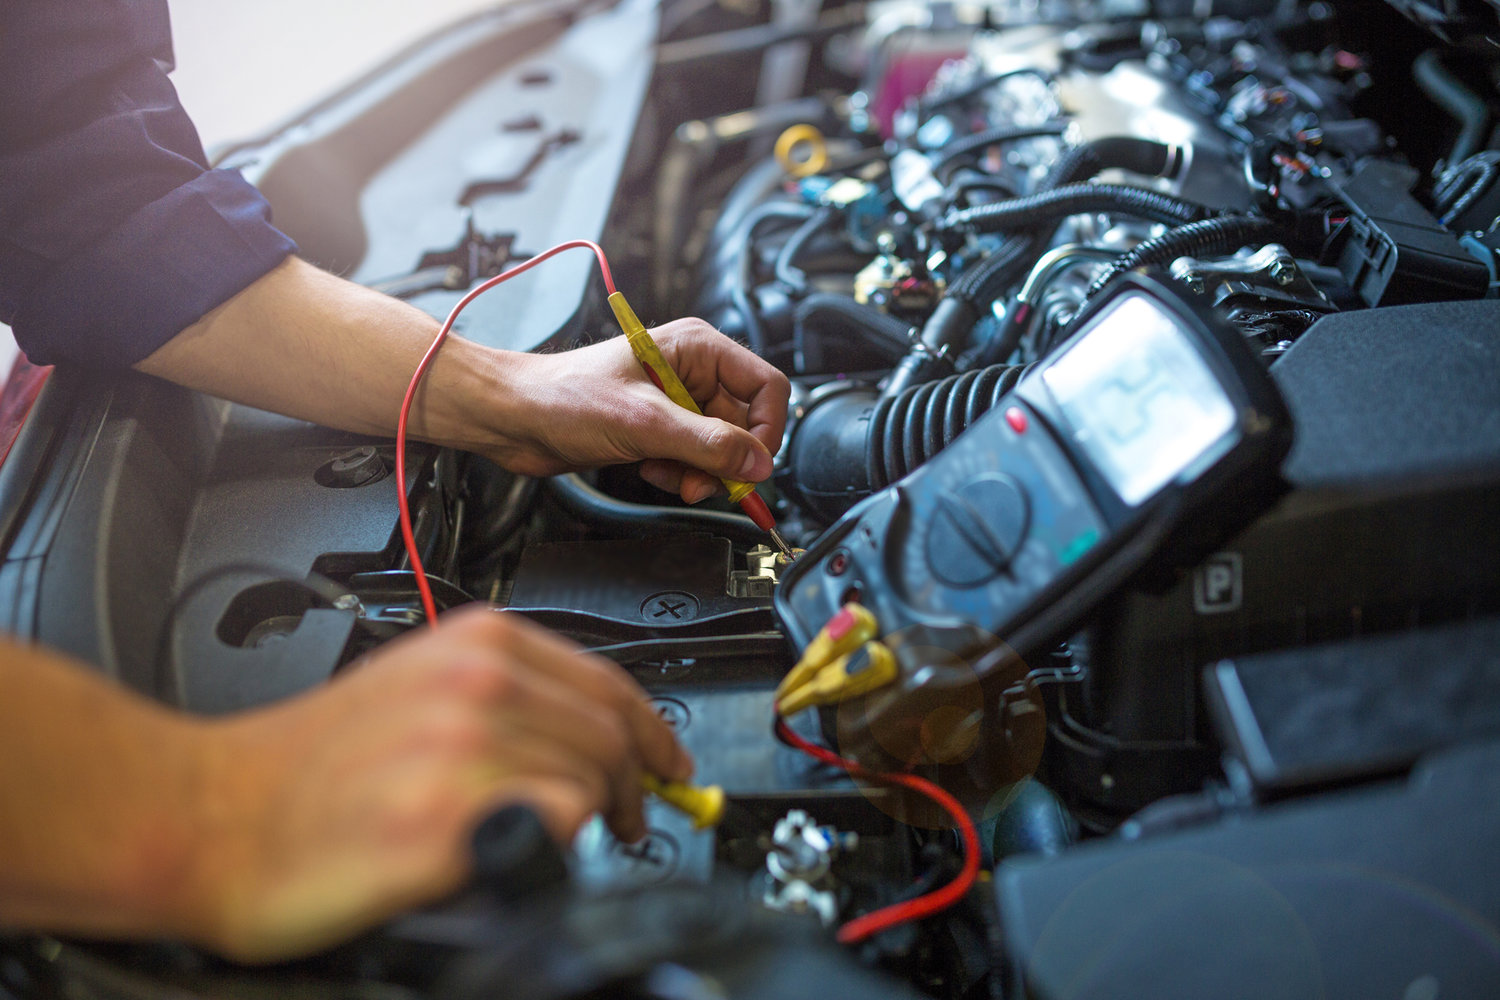 Wagga City Auto Centre Mechanic Automotive Wiring Specialist Bigstock Checking Car Bat 218243365 Web